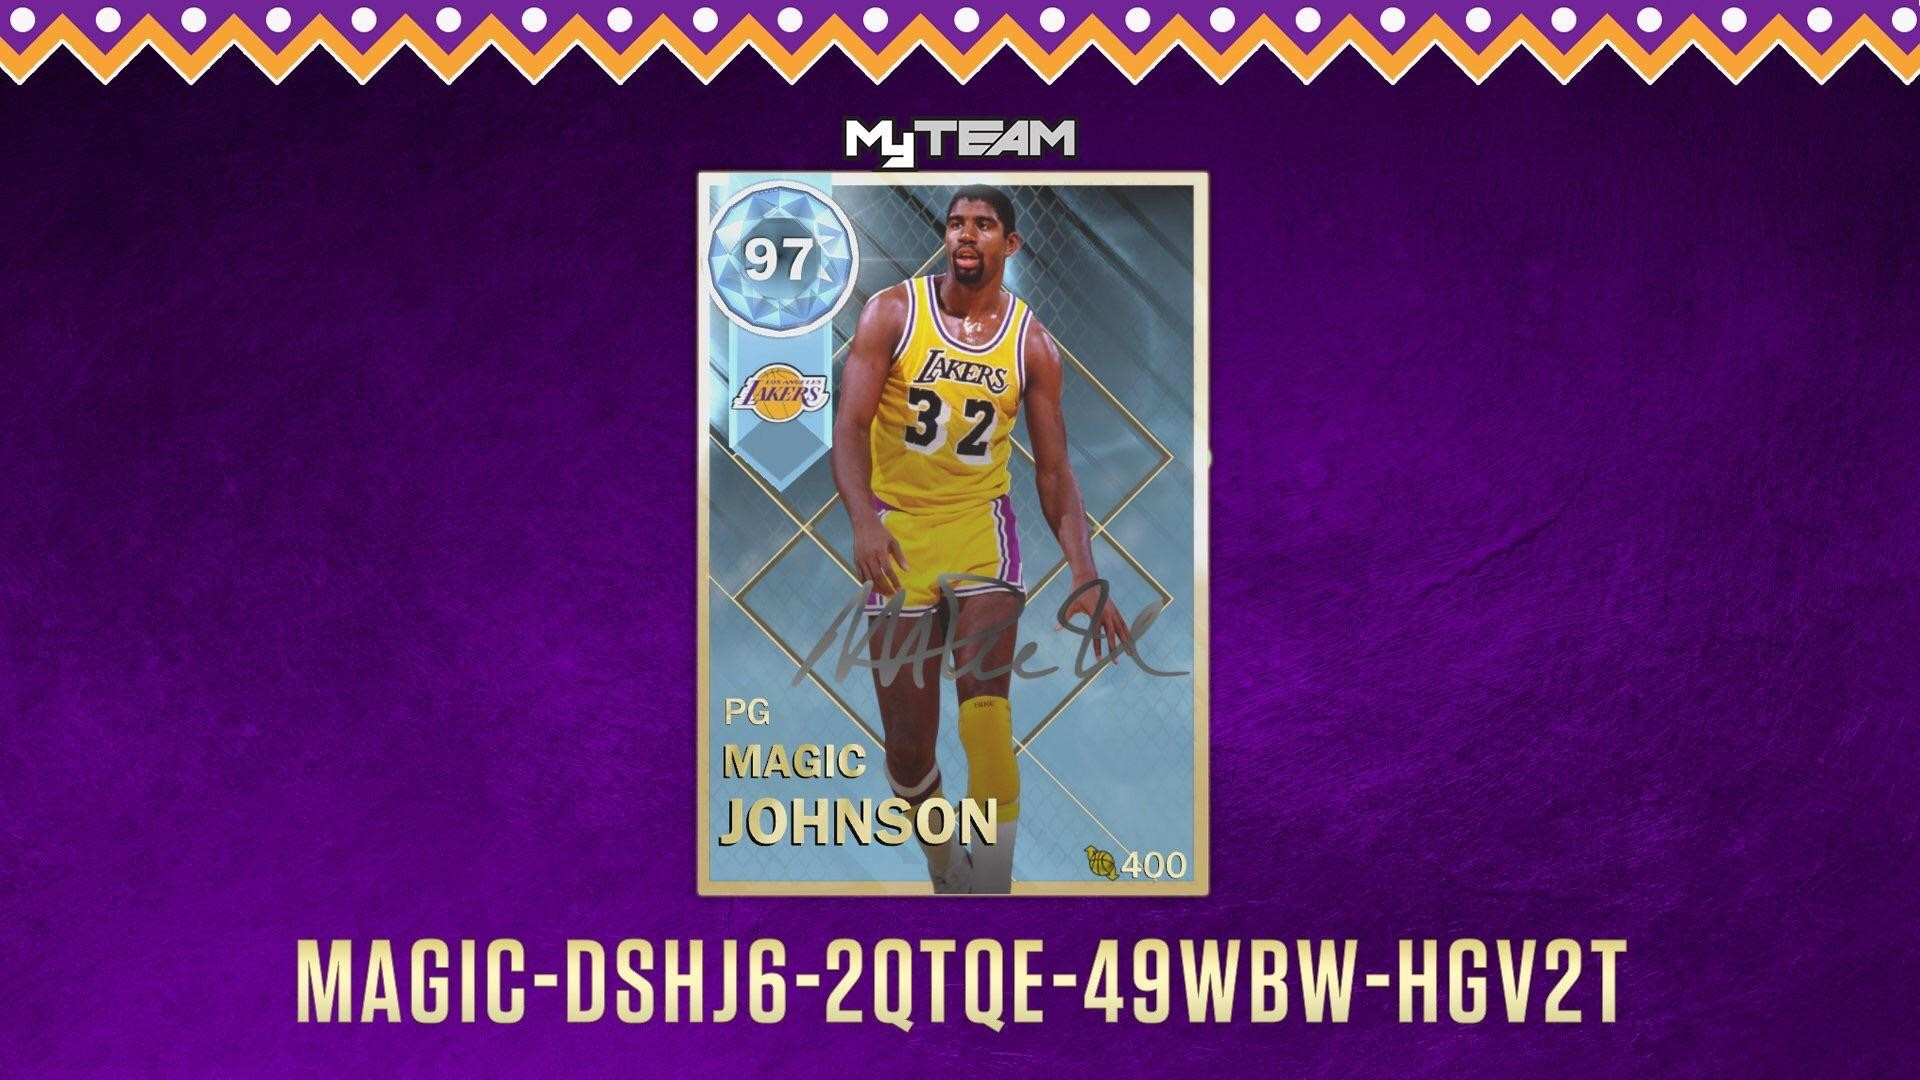 1920x1080 Locker CodeLocker Codes - Diamond Magic Johnson ...